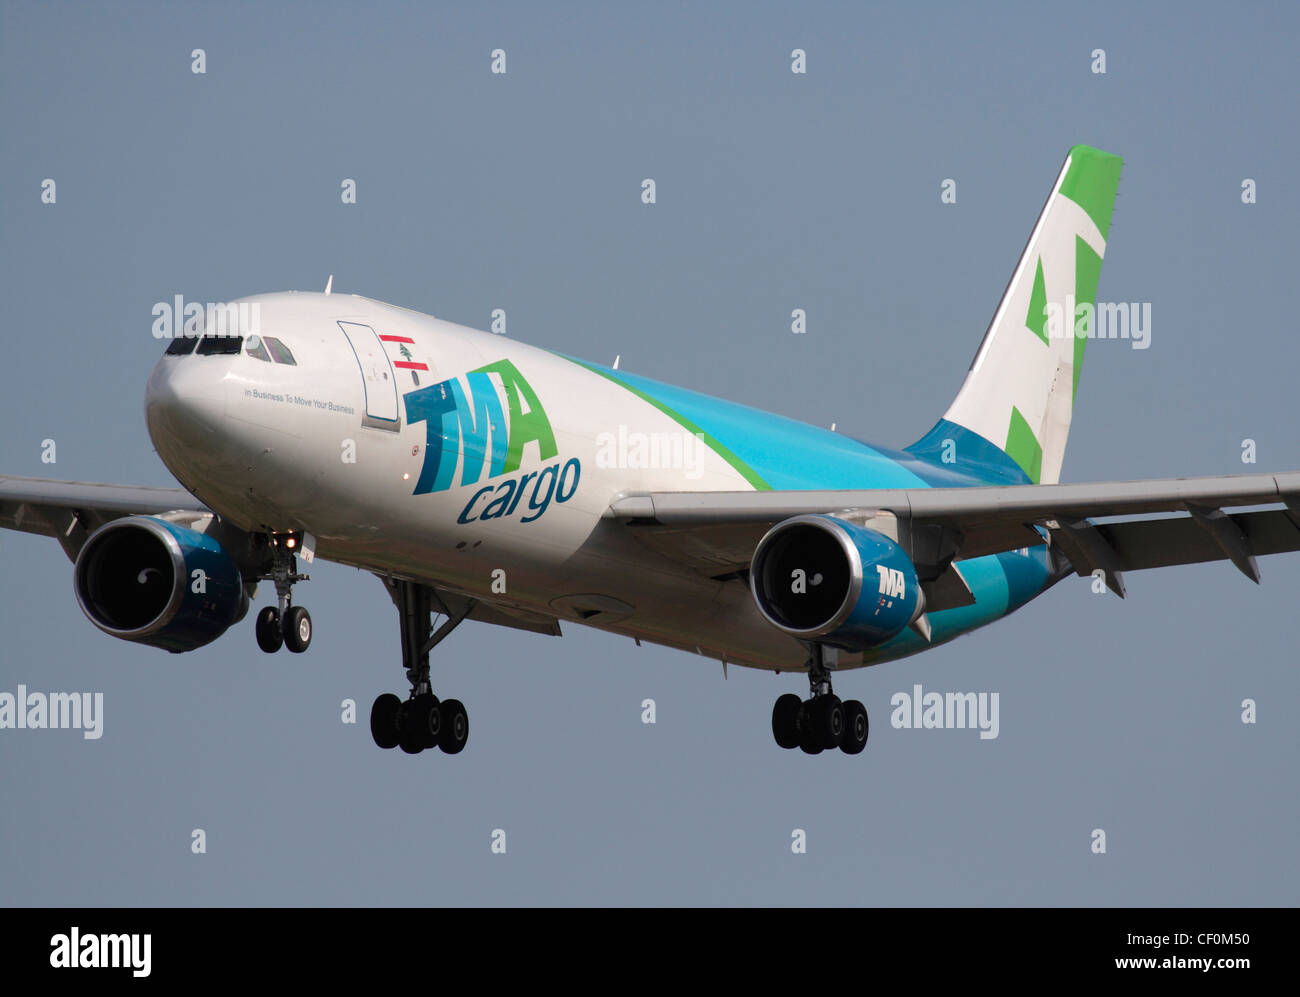 TMA Cargo Airbus A300-600F on final approach - Stock Image